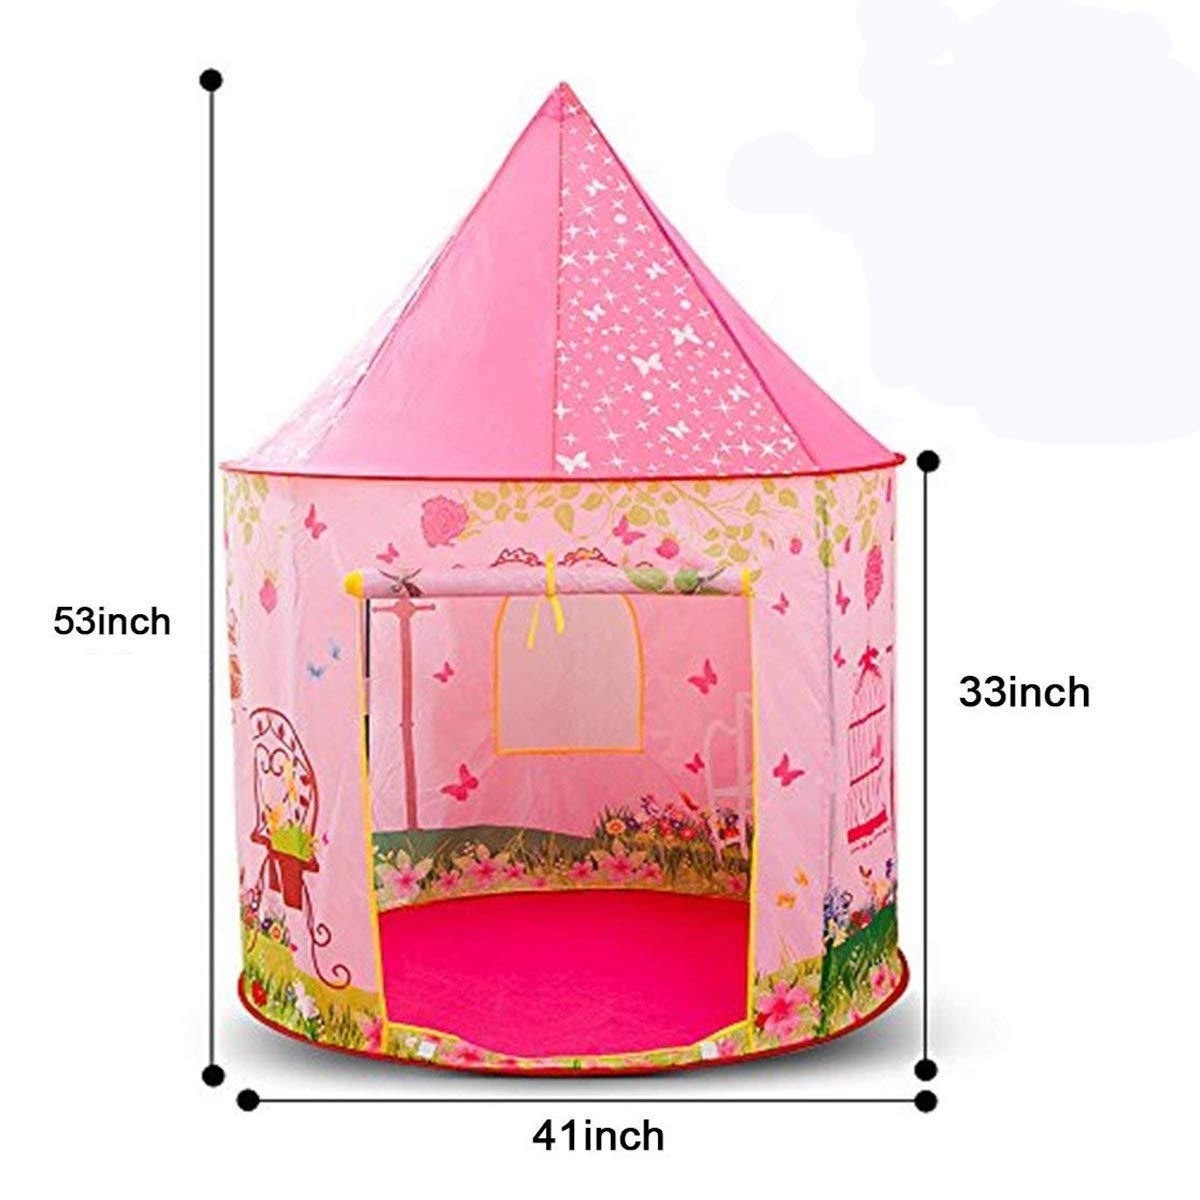 Kids Tent, Anyshock Pop Up Baby Toys Play Tent House Princess Castle Dollhouse Outdoor and Indoor for 1-8 Years Old Kids Girls Boy Toddler Infant (No LED Light,Princess Dollhouse)